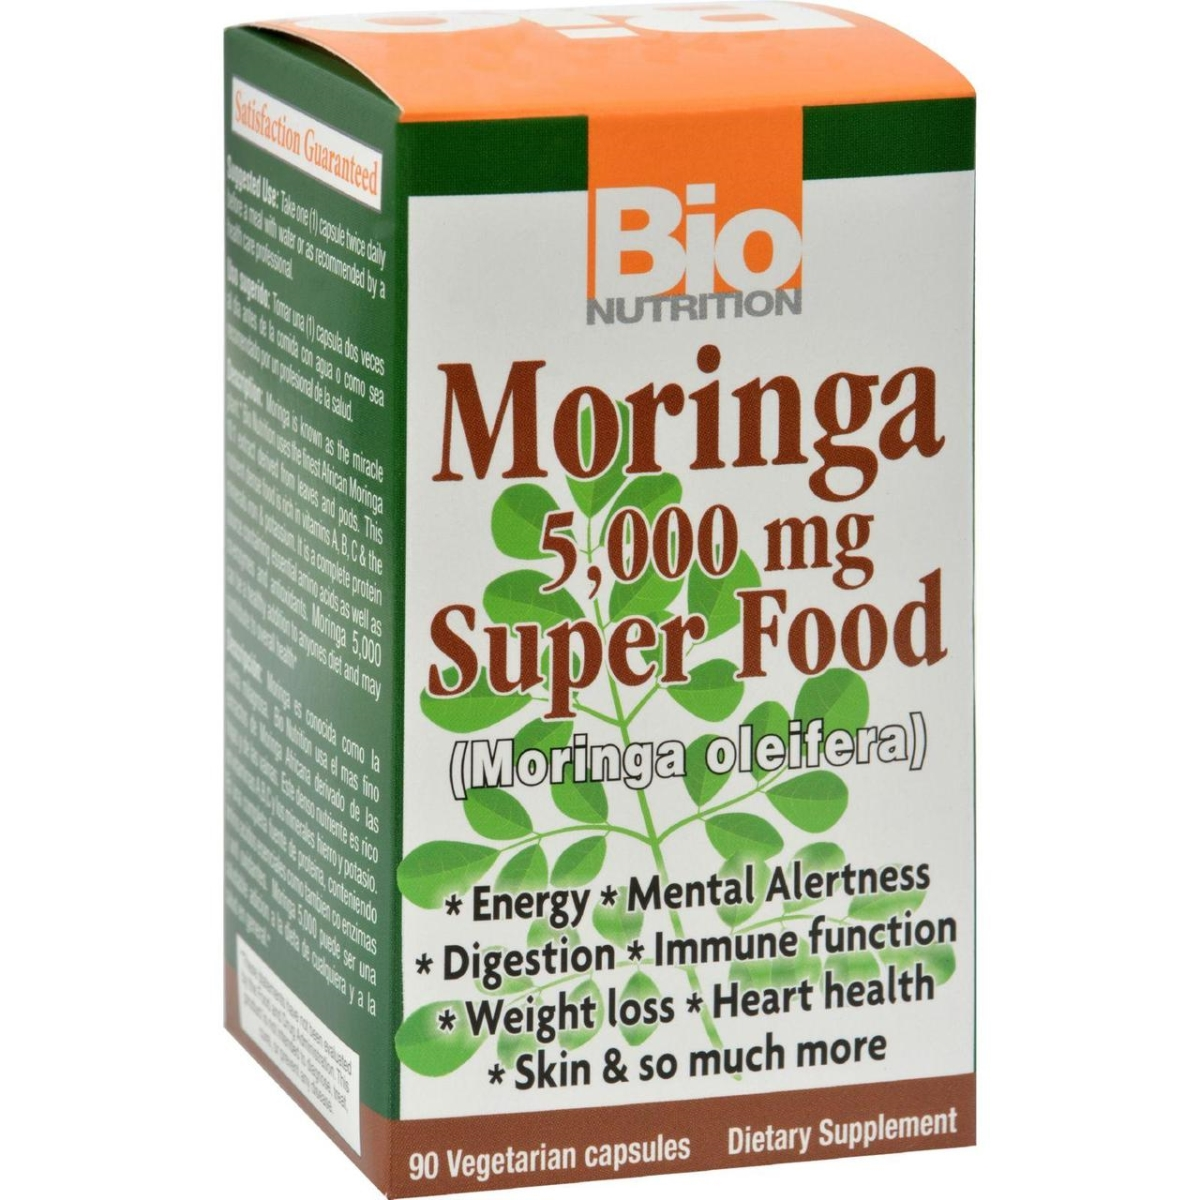 Bio Nutrition HG1237353 5000 mg Moringa - 90 Count